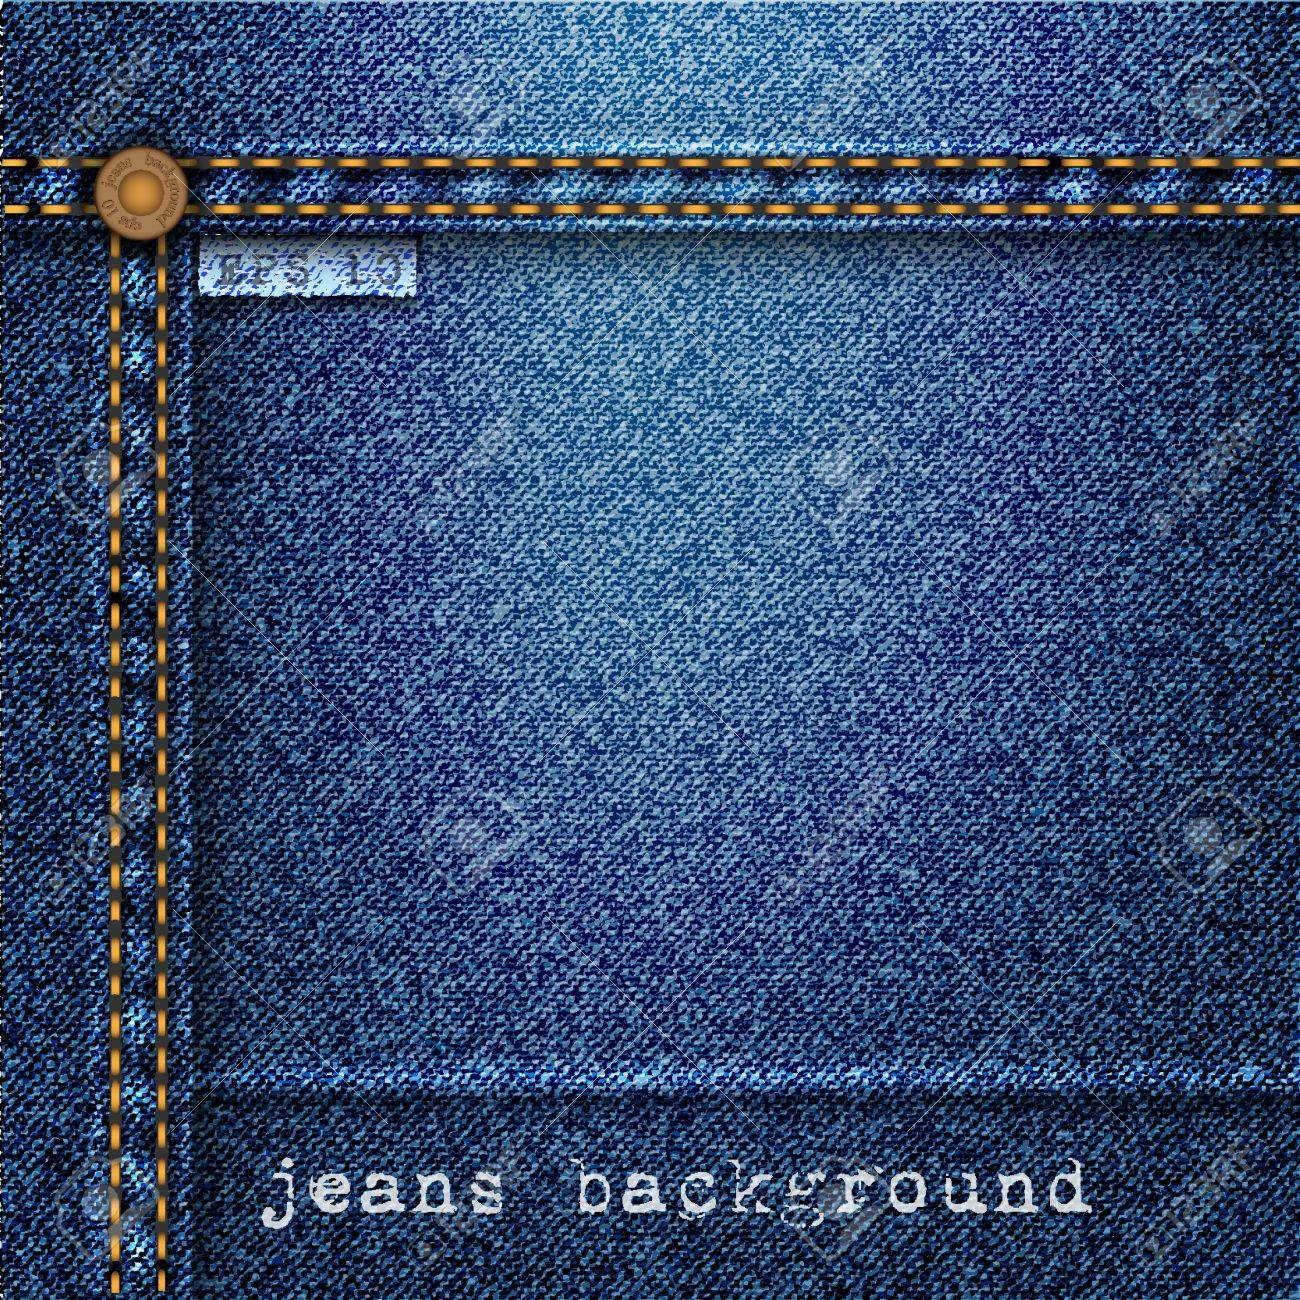 Jeans background. Stock Vector - 12967174